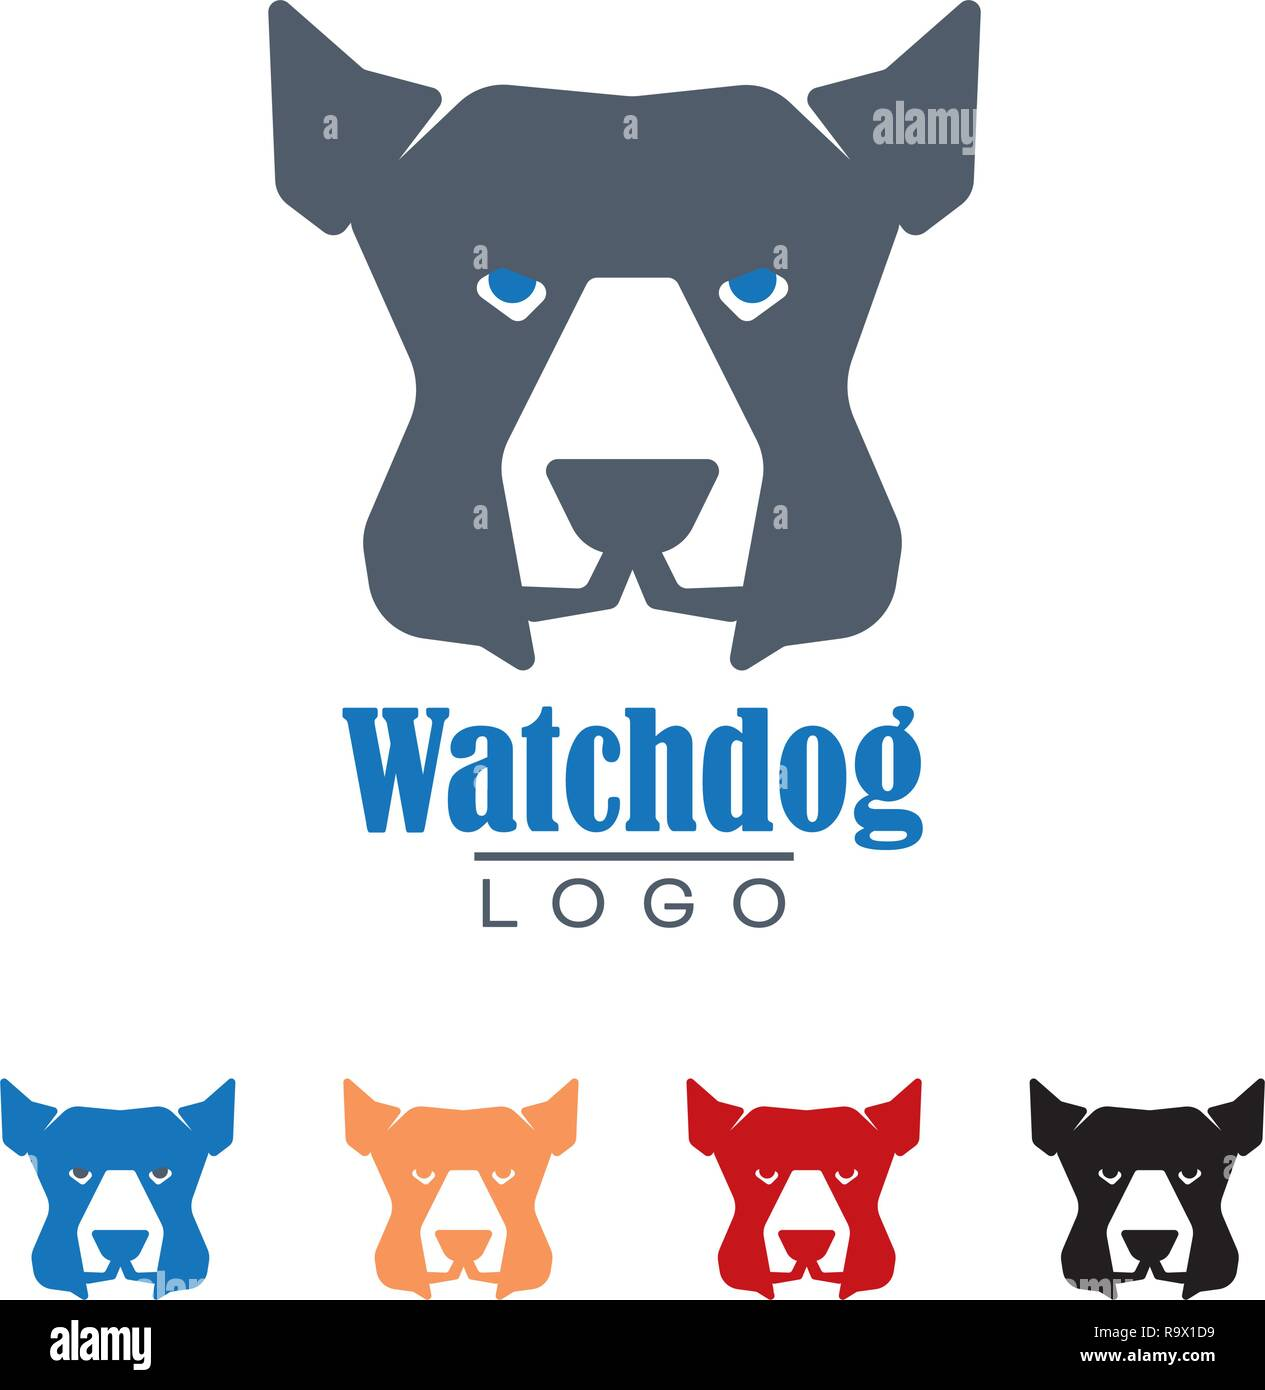 Company logo template with watchdog vector illustration. Protection and security symbol. - Stock Image